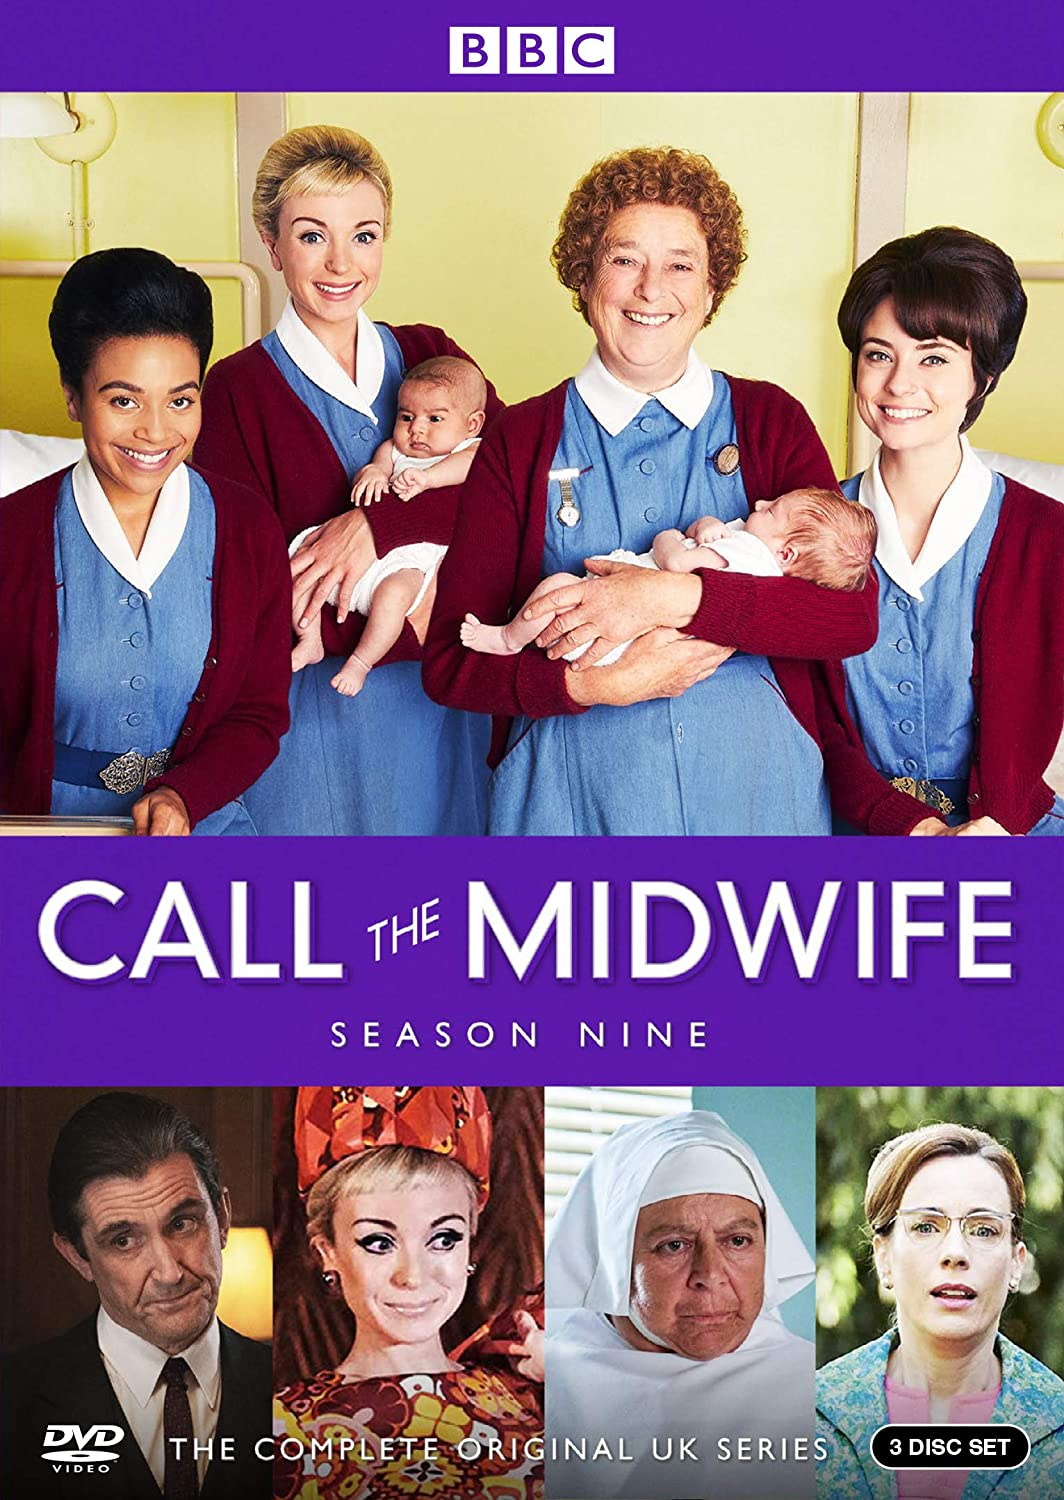 Call the Midwife Season 9 DVD BBC America DVDs & Blu-ray Discs